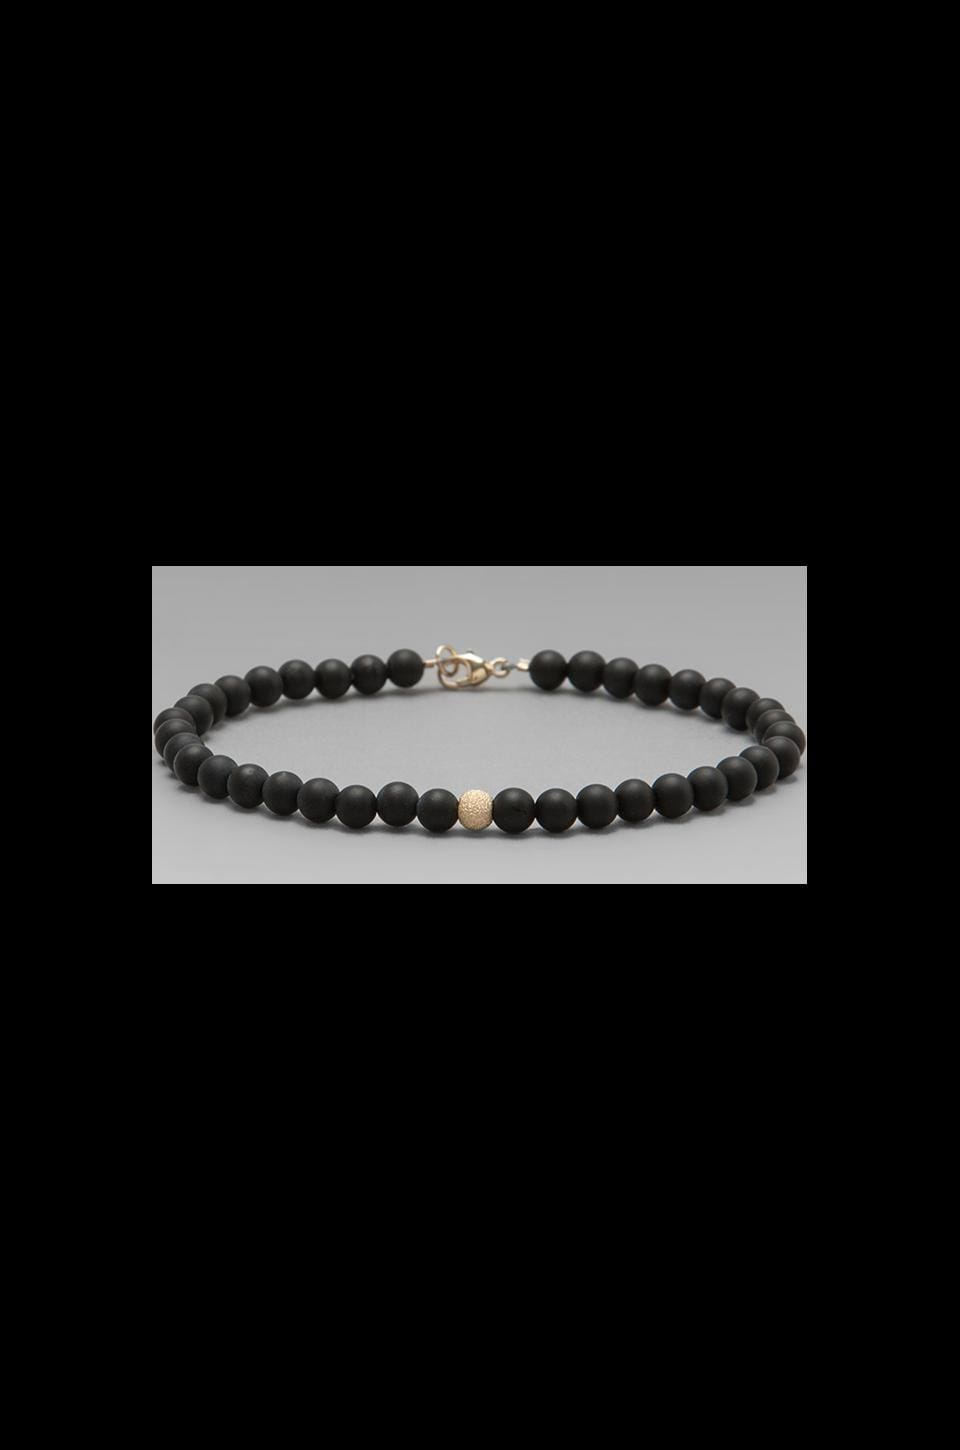 ANINE BING 14K Gold Beaded Bracelet in Black